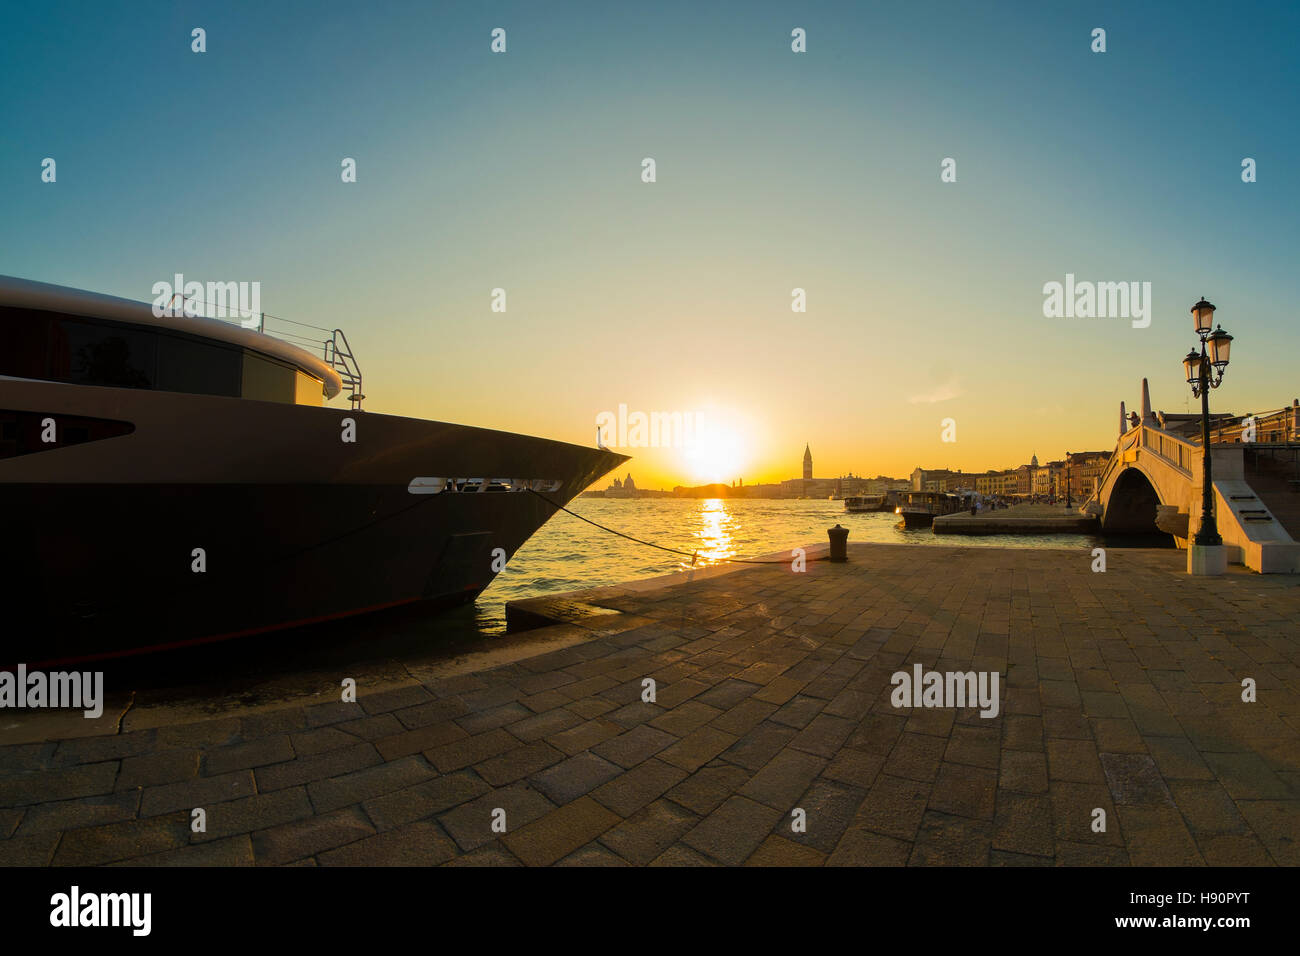 Sunset in Venice with luxury yacht. - Stock Image